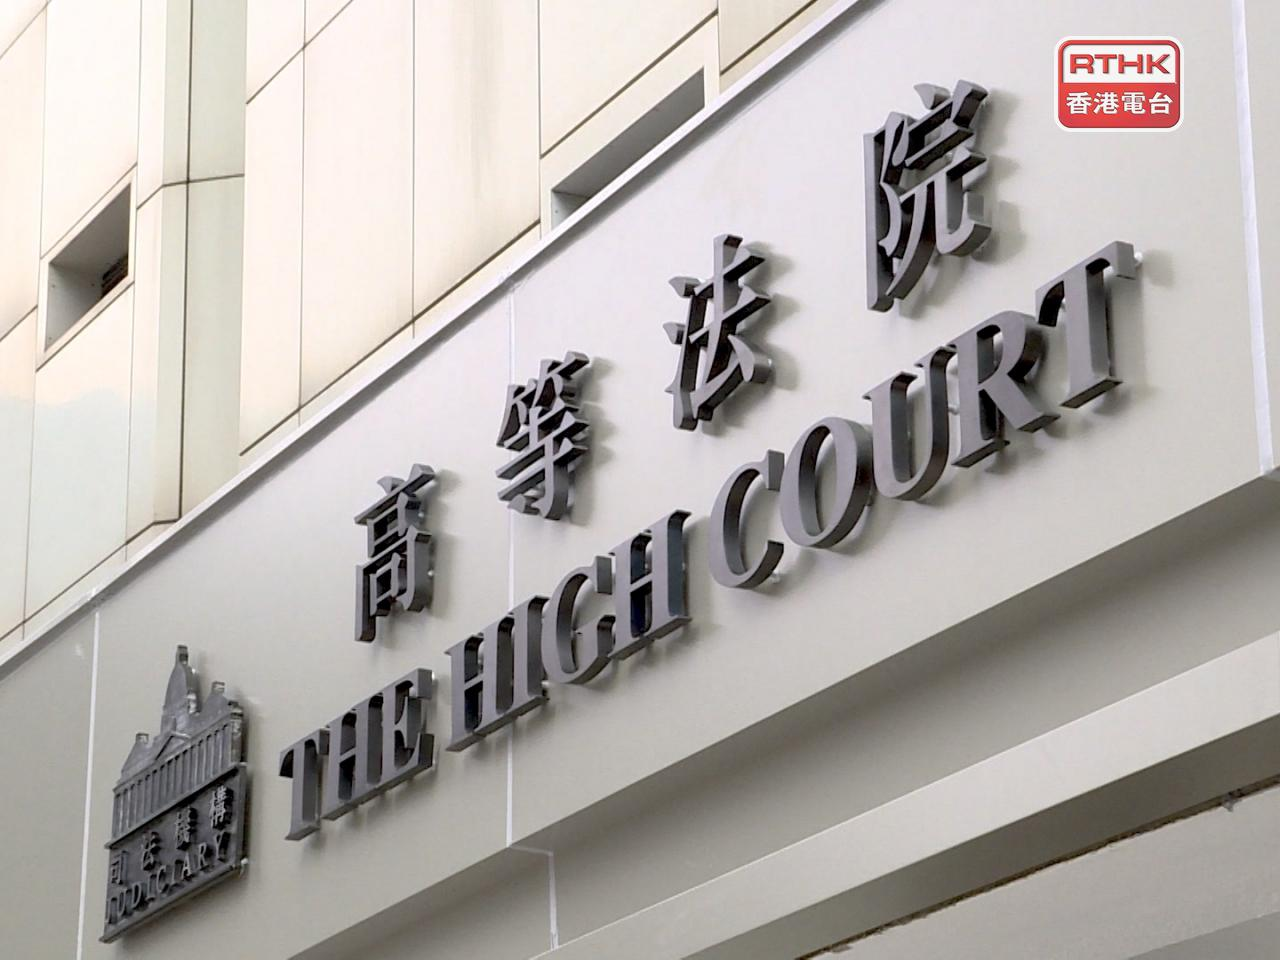 Doctor jailed for six years over liposuction death